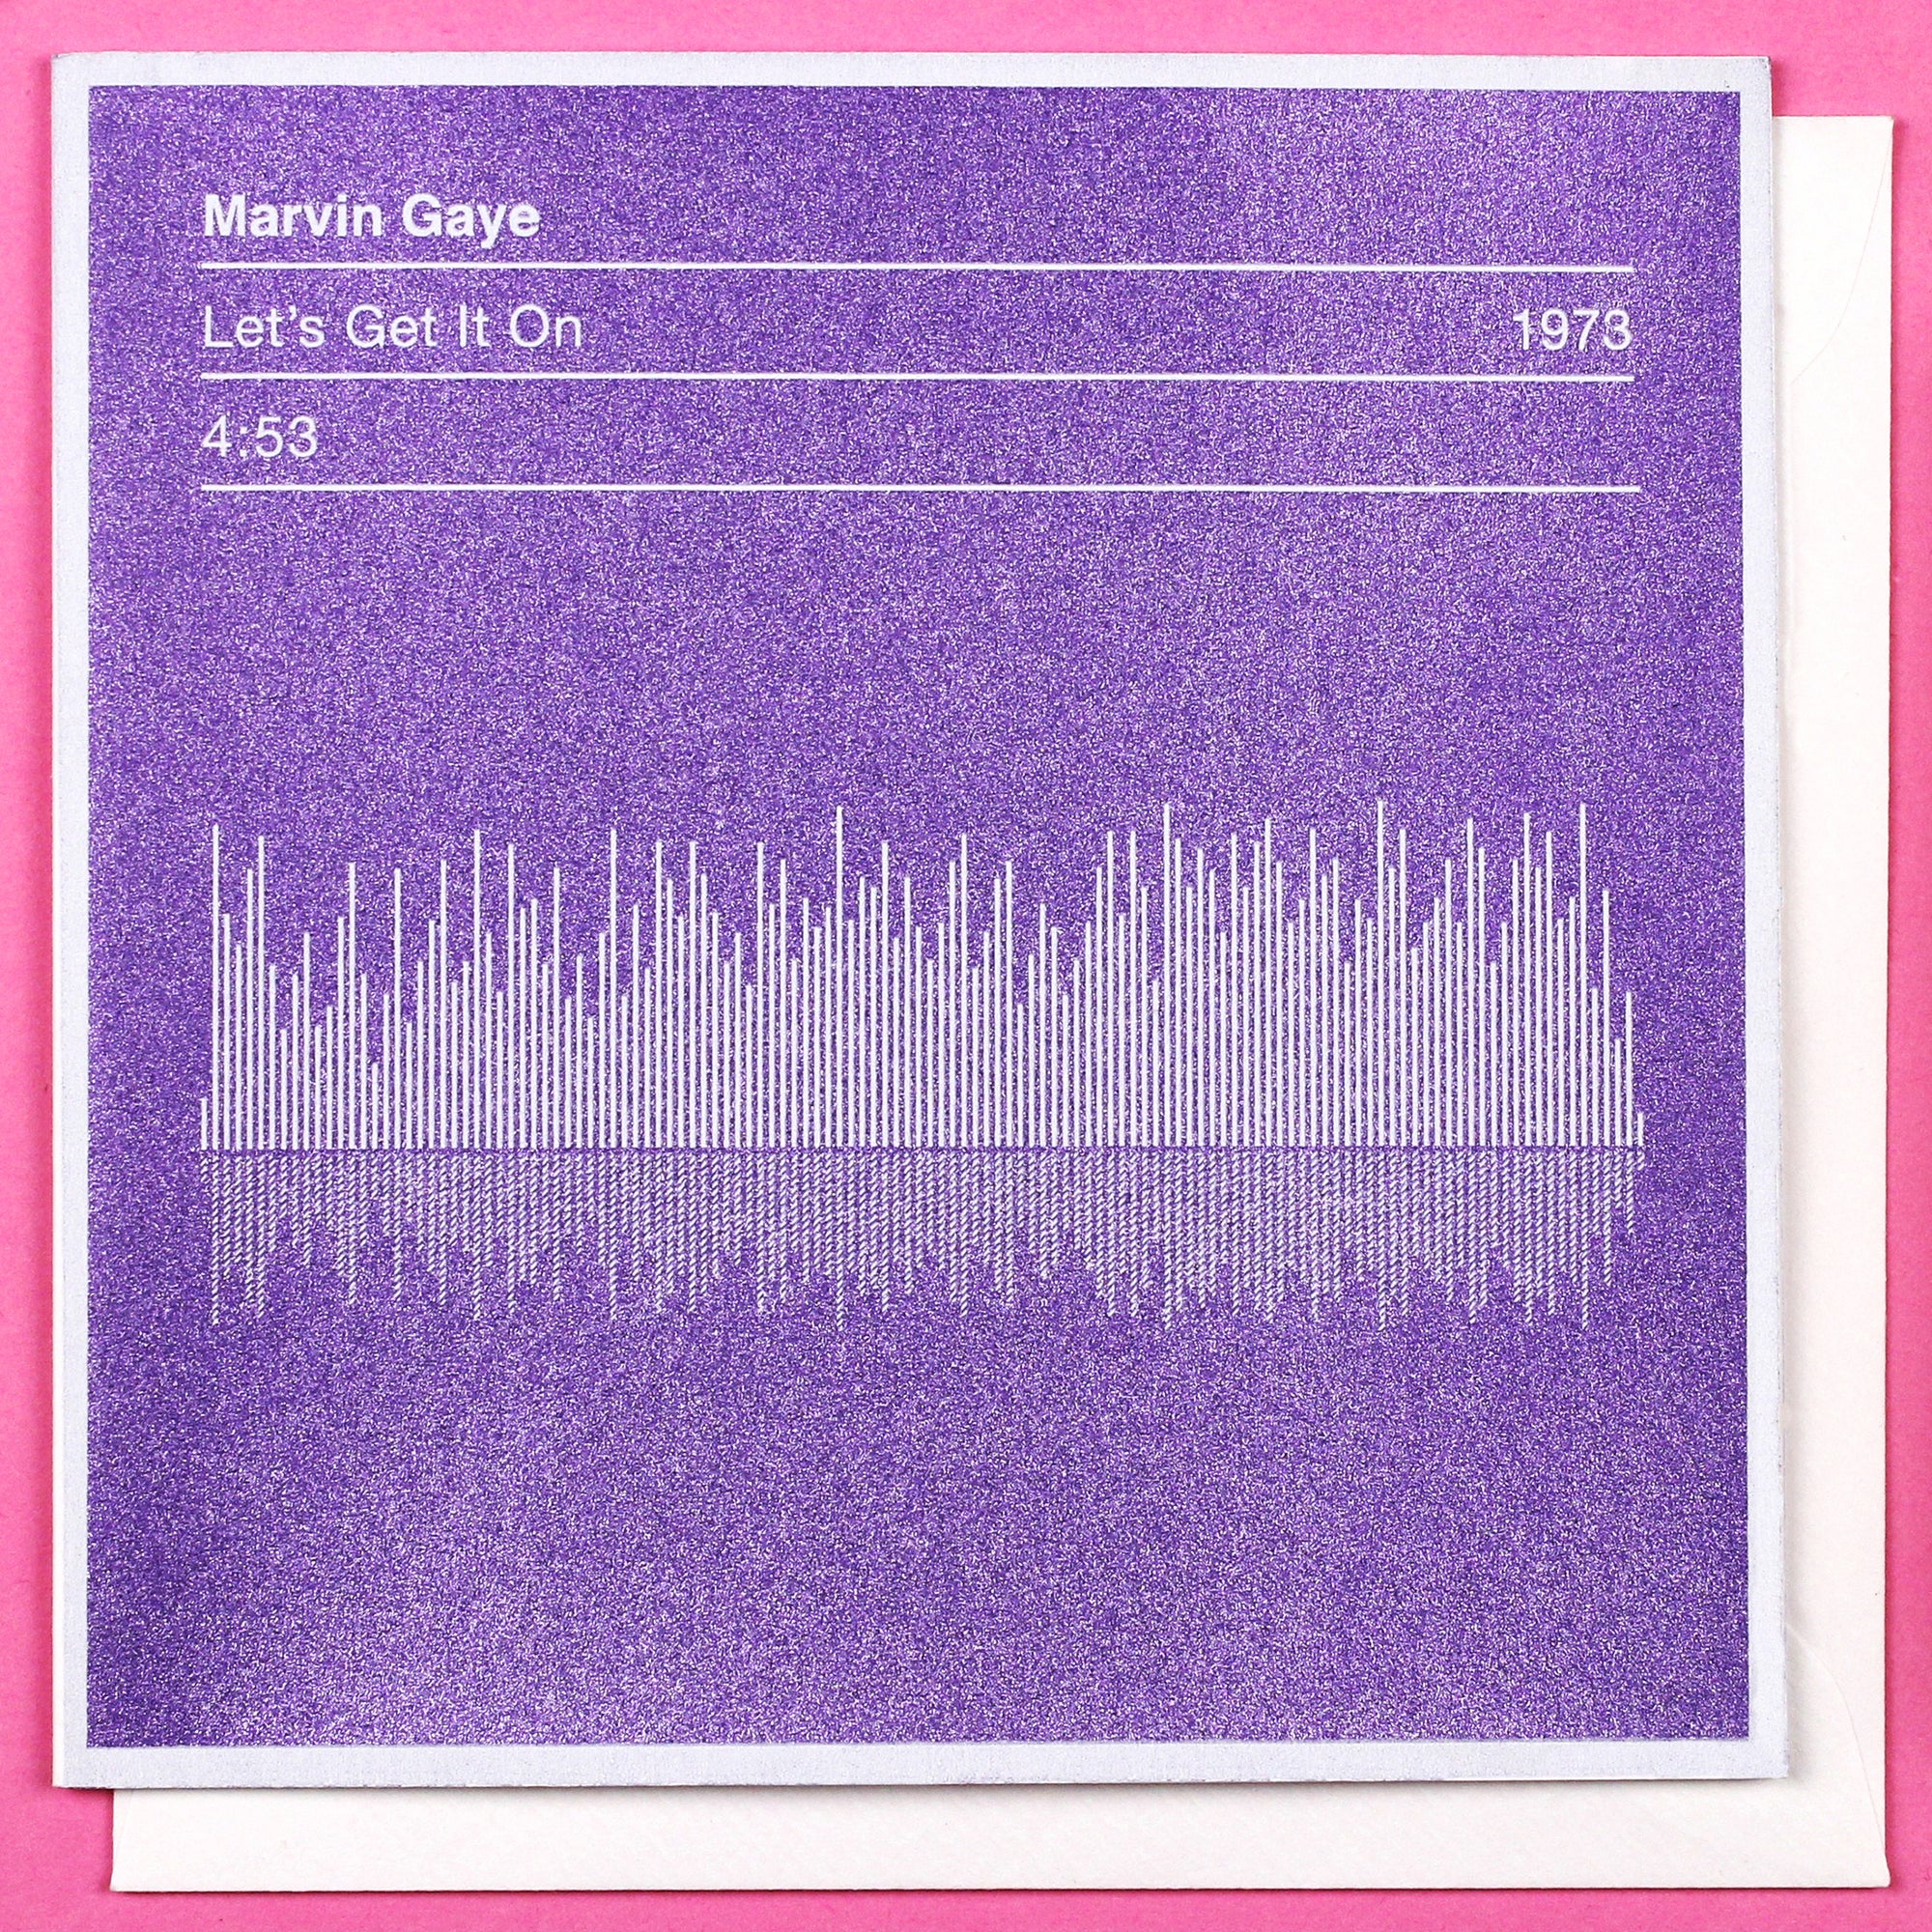 marvin gaye valentines card 'let's get it on' song sound